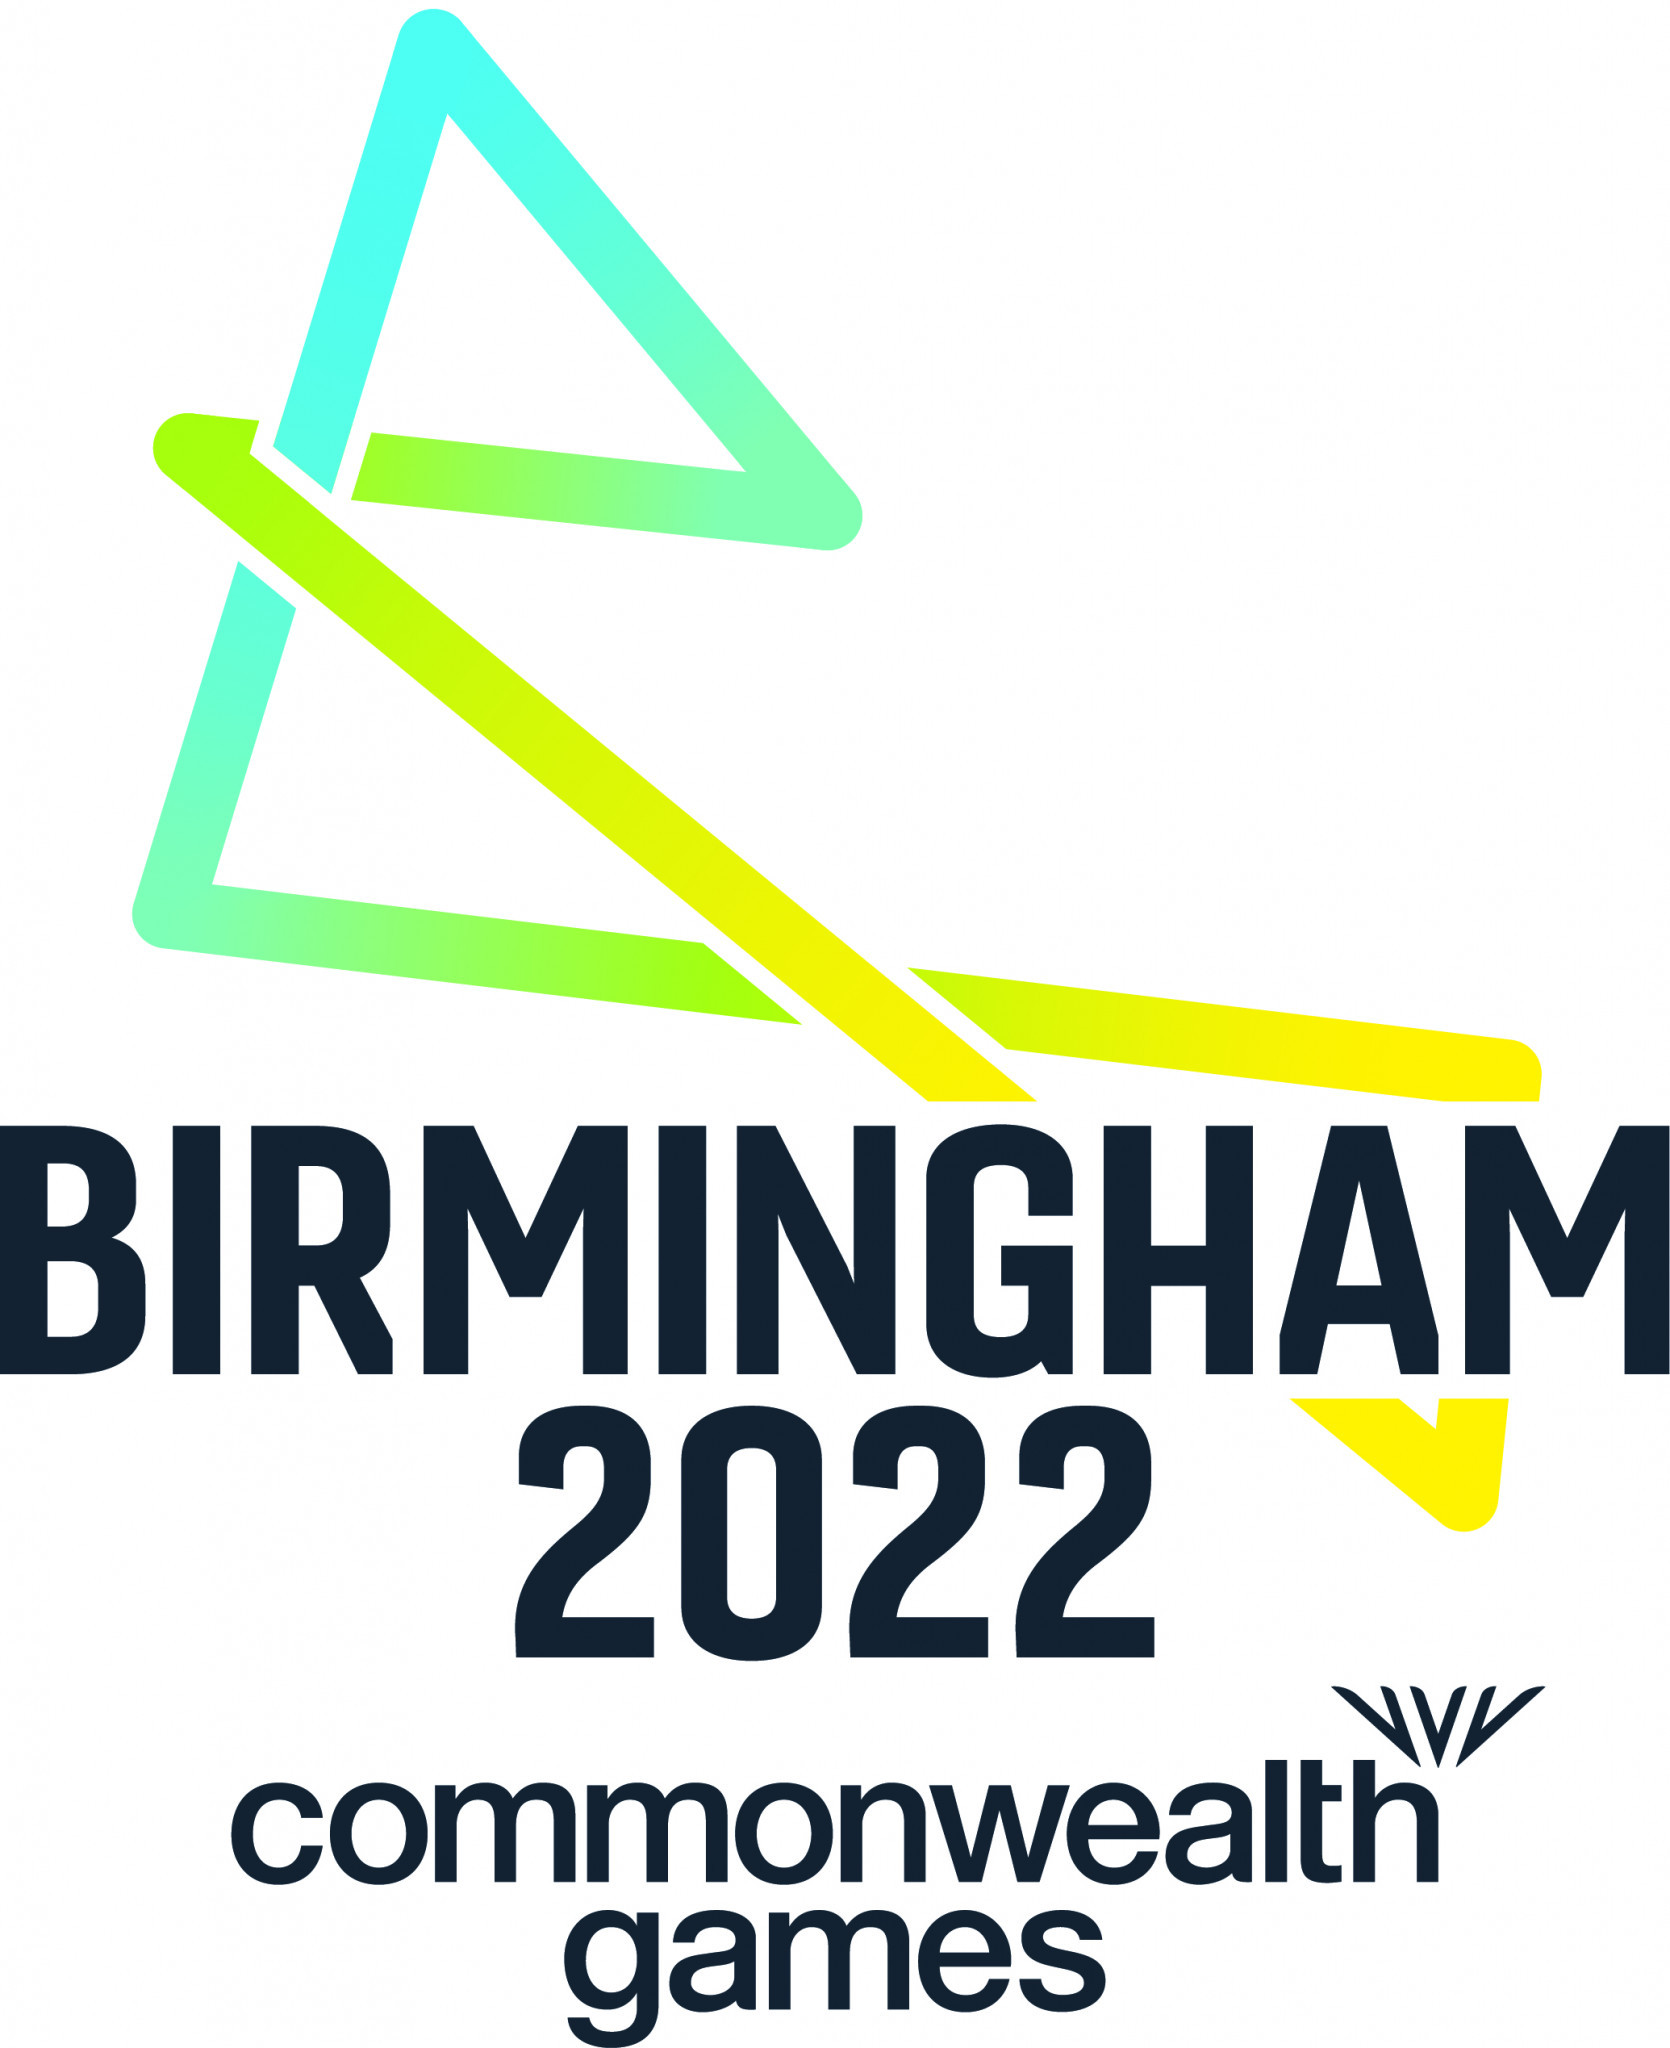 Businesses are being invited to apply for the opportunity to acquire the rights to sell merchandise related to the Birmingham 2022 Commonwealth Games ©Birmingham 2022